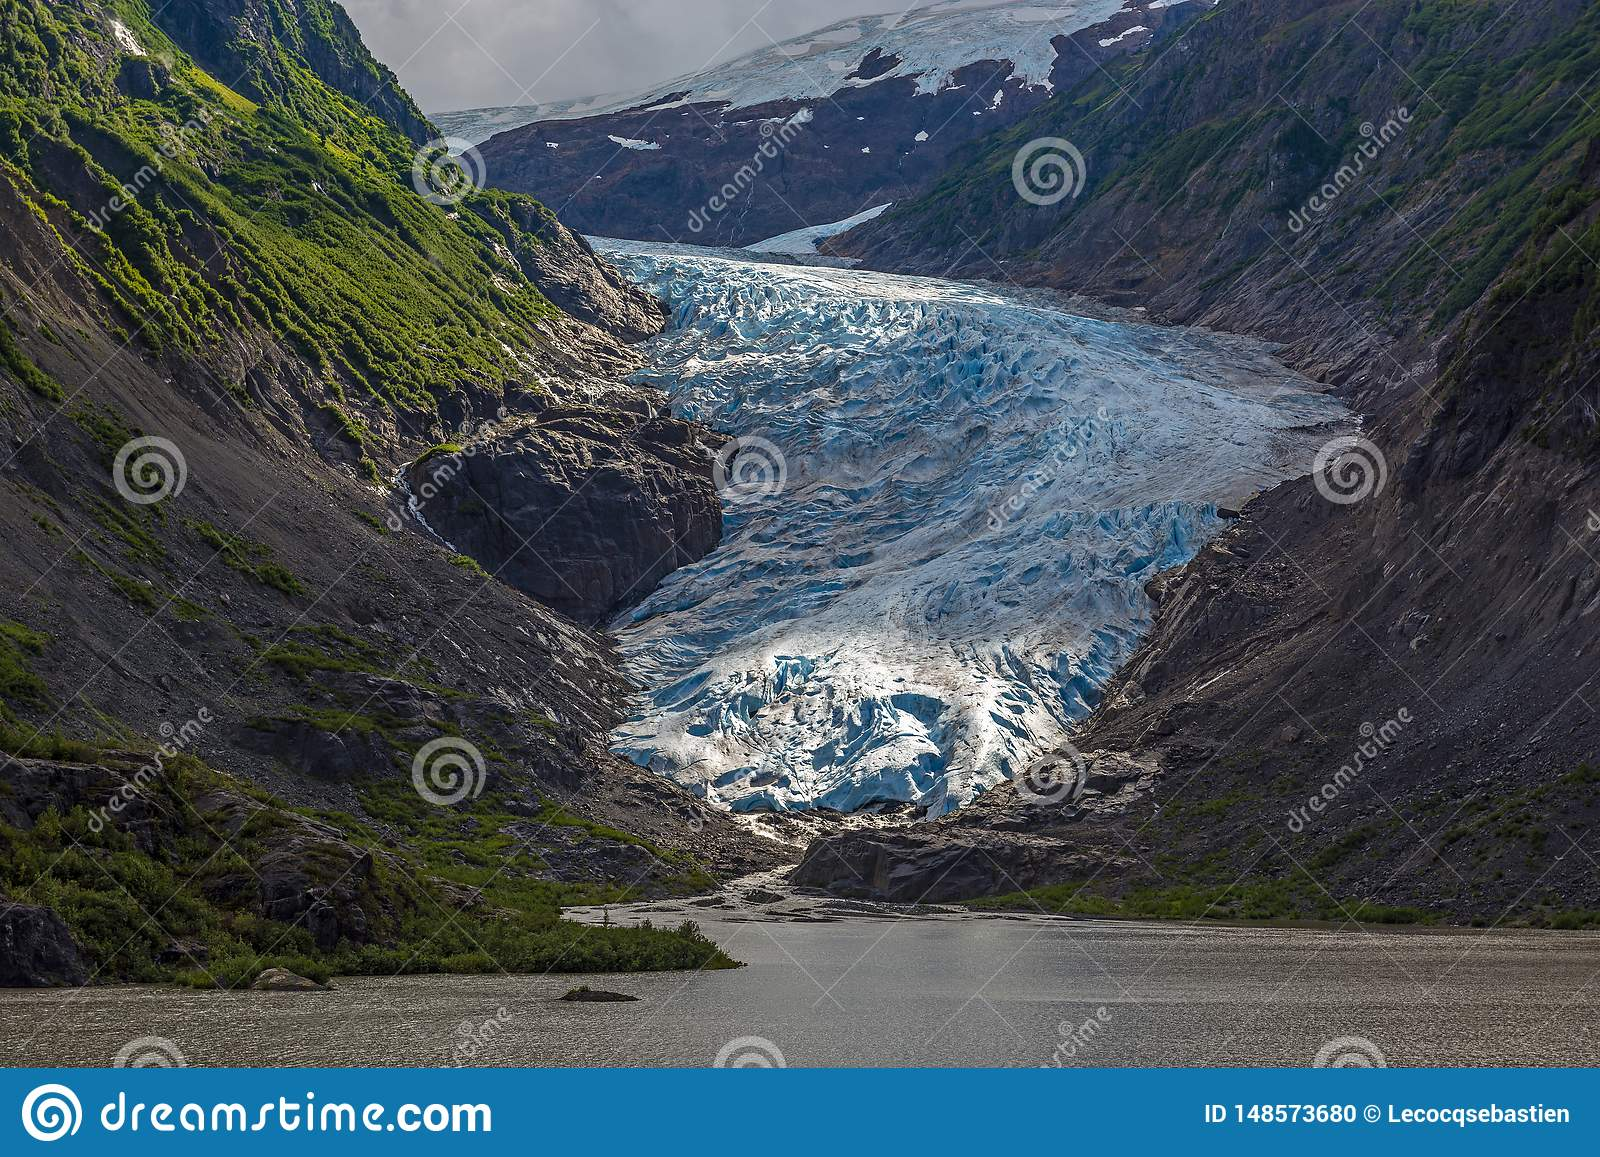 Bear Glacier in Alaska, USA